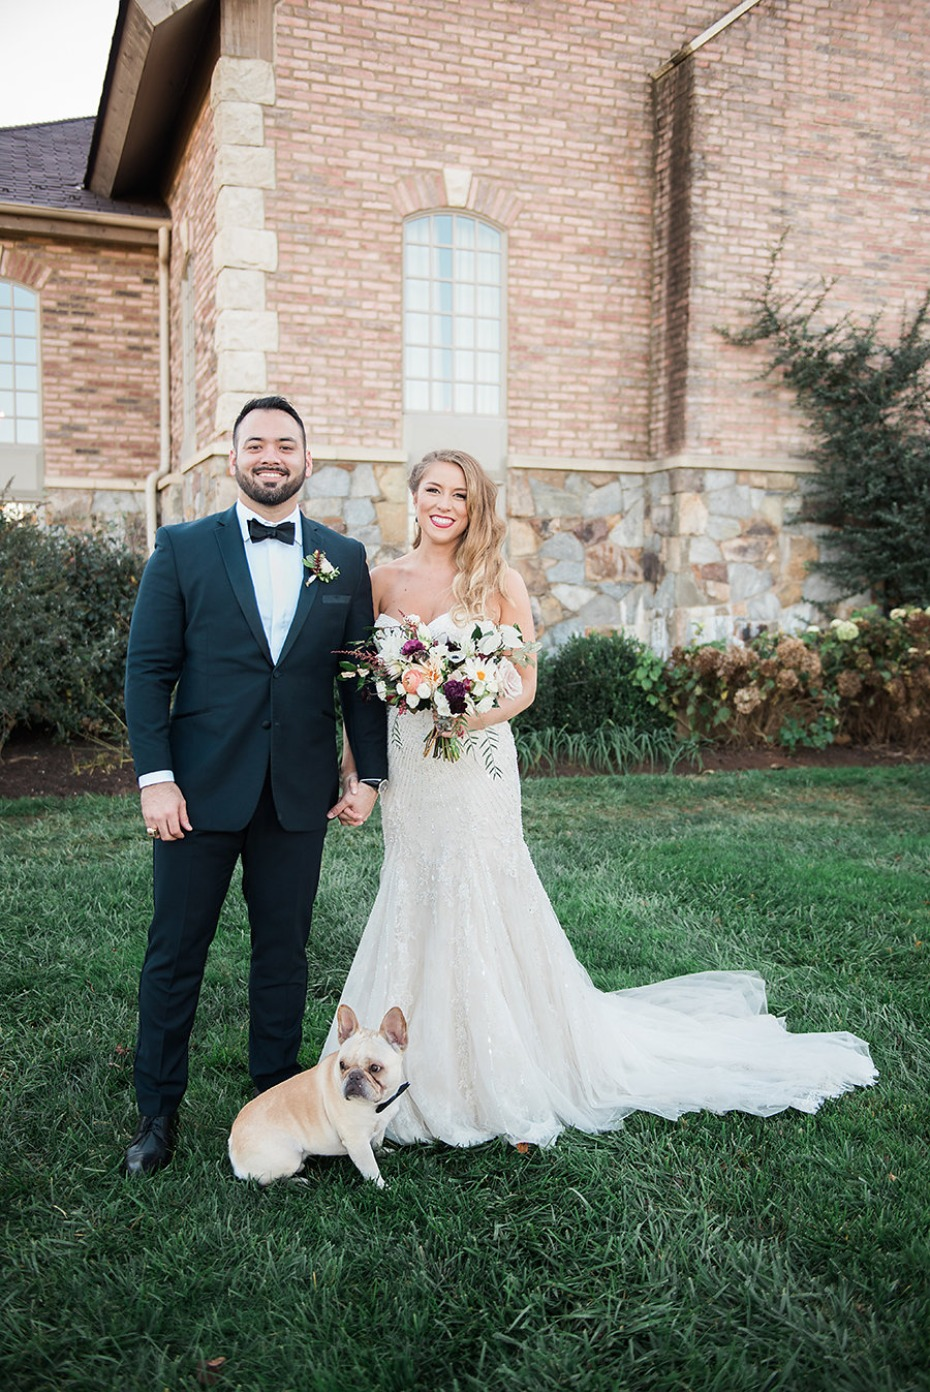 Beautiful couple and pup